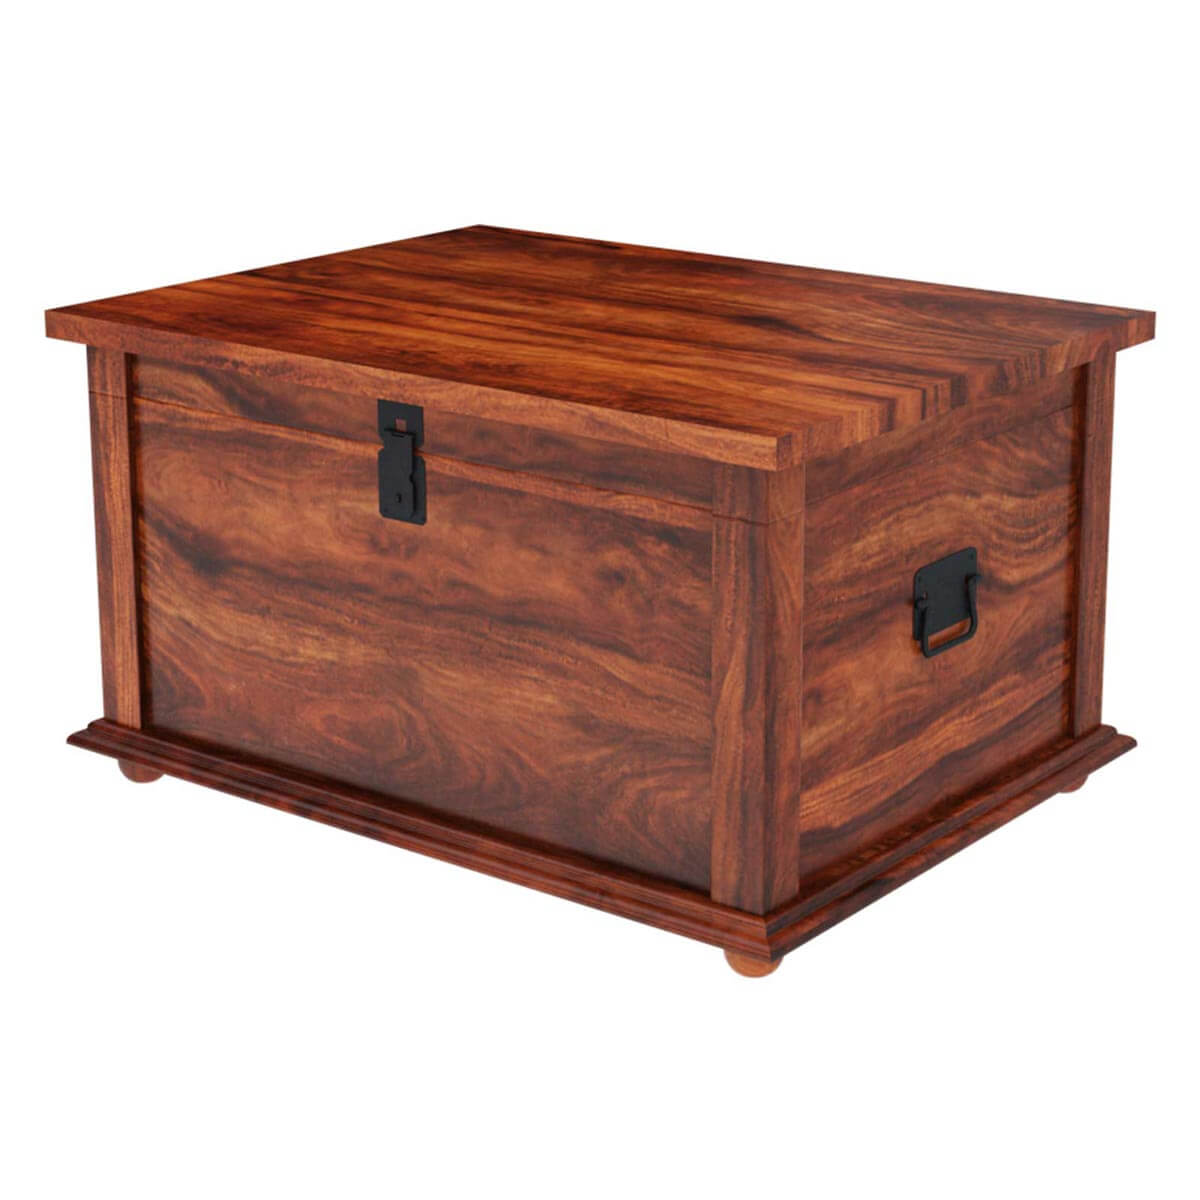 Primitive wood storage grinnell storage chest trunk coffee table Coffee table chest with storage